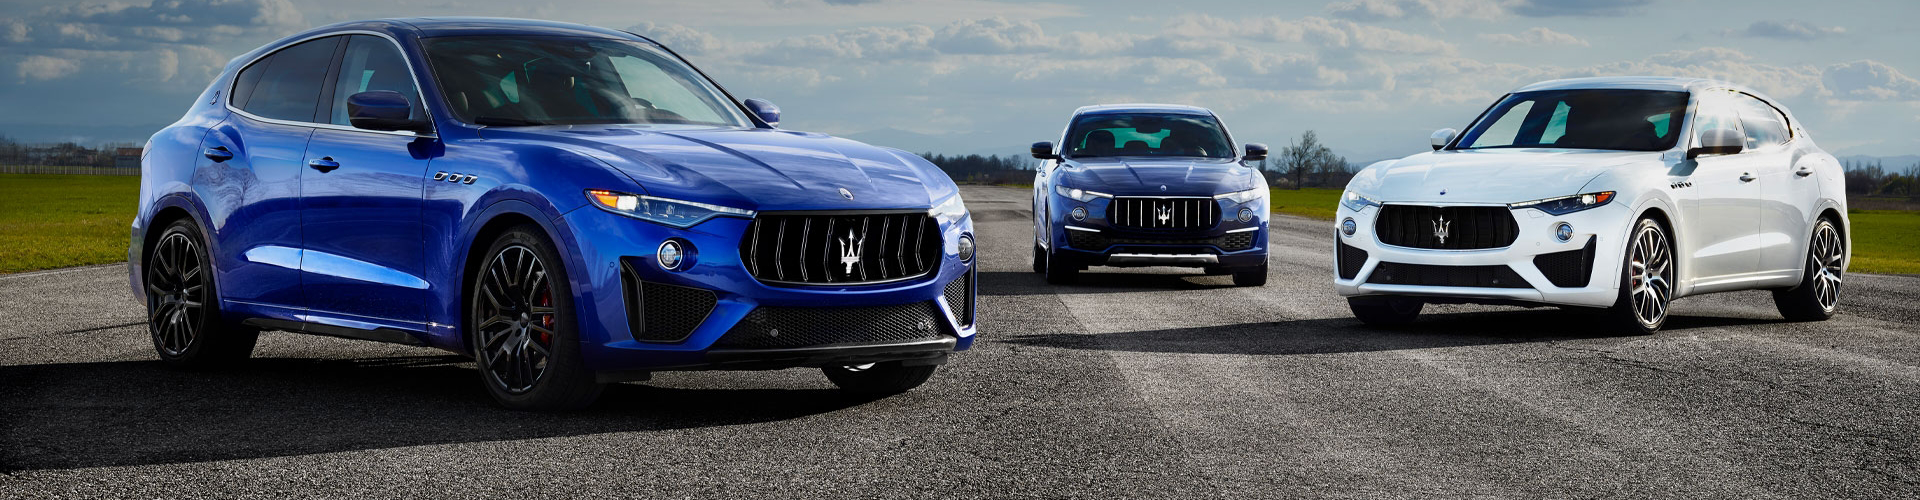 Lease and Finance Offers on New Maserati Models | Maserati of Naperville